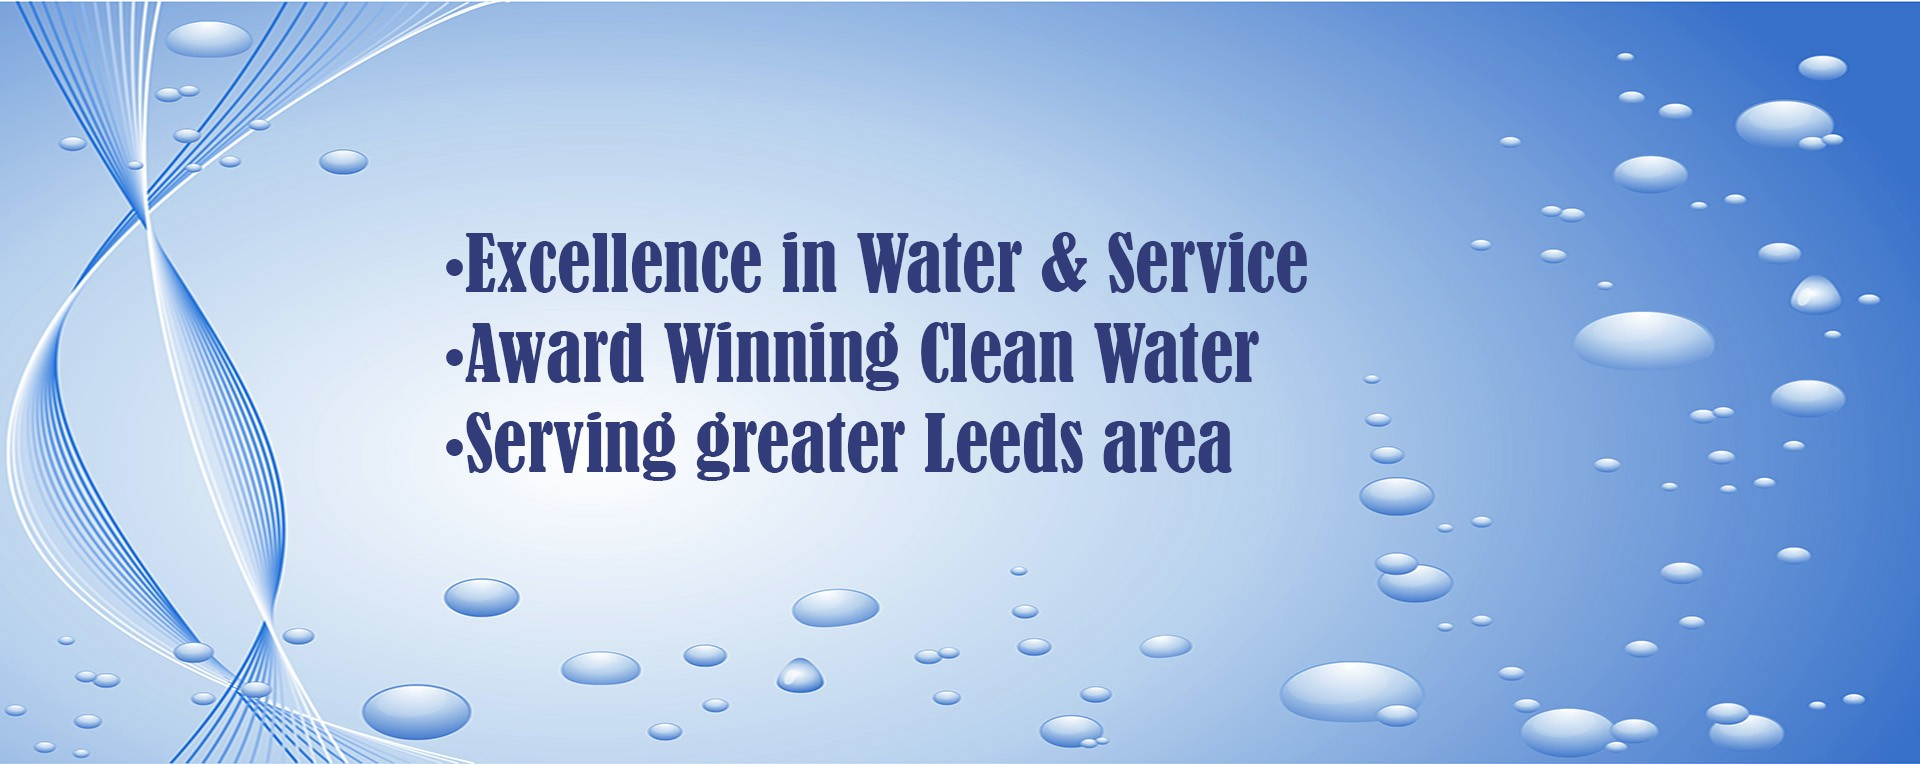 Leeds Water Works Board Award Winning Water in Leeds Alabama